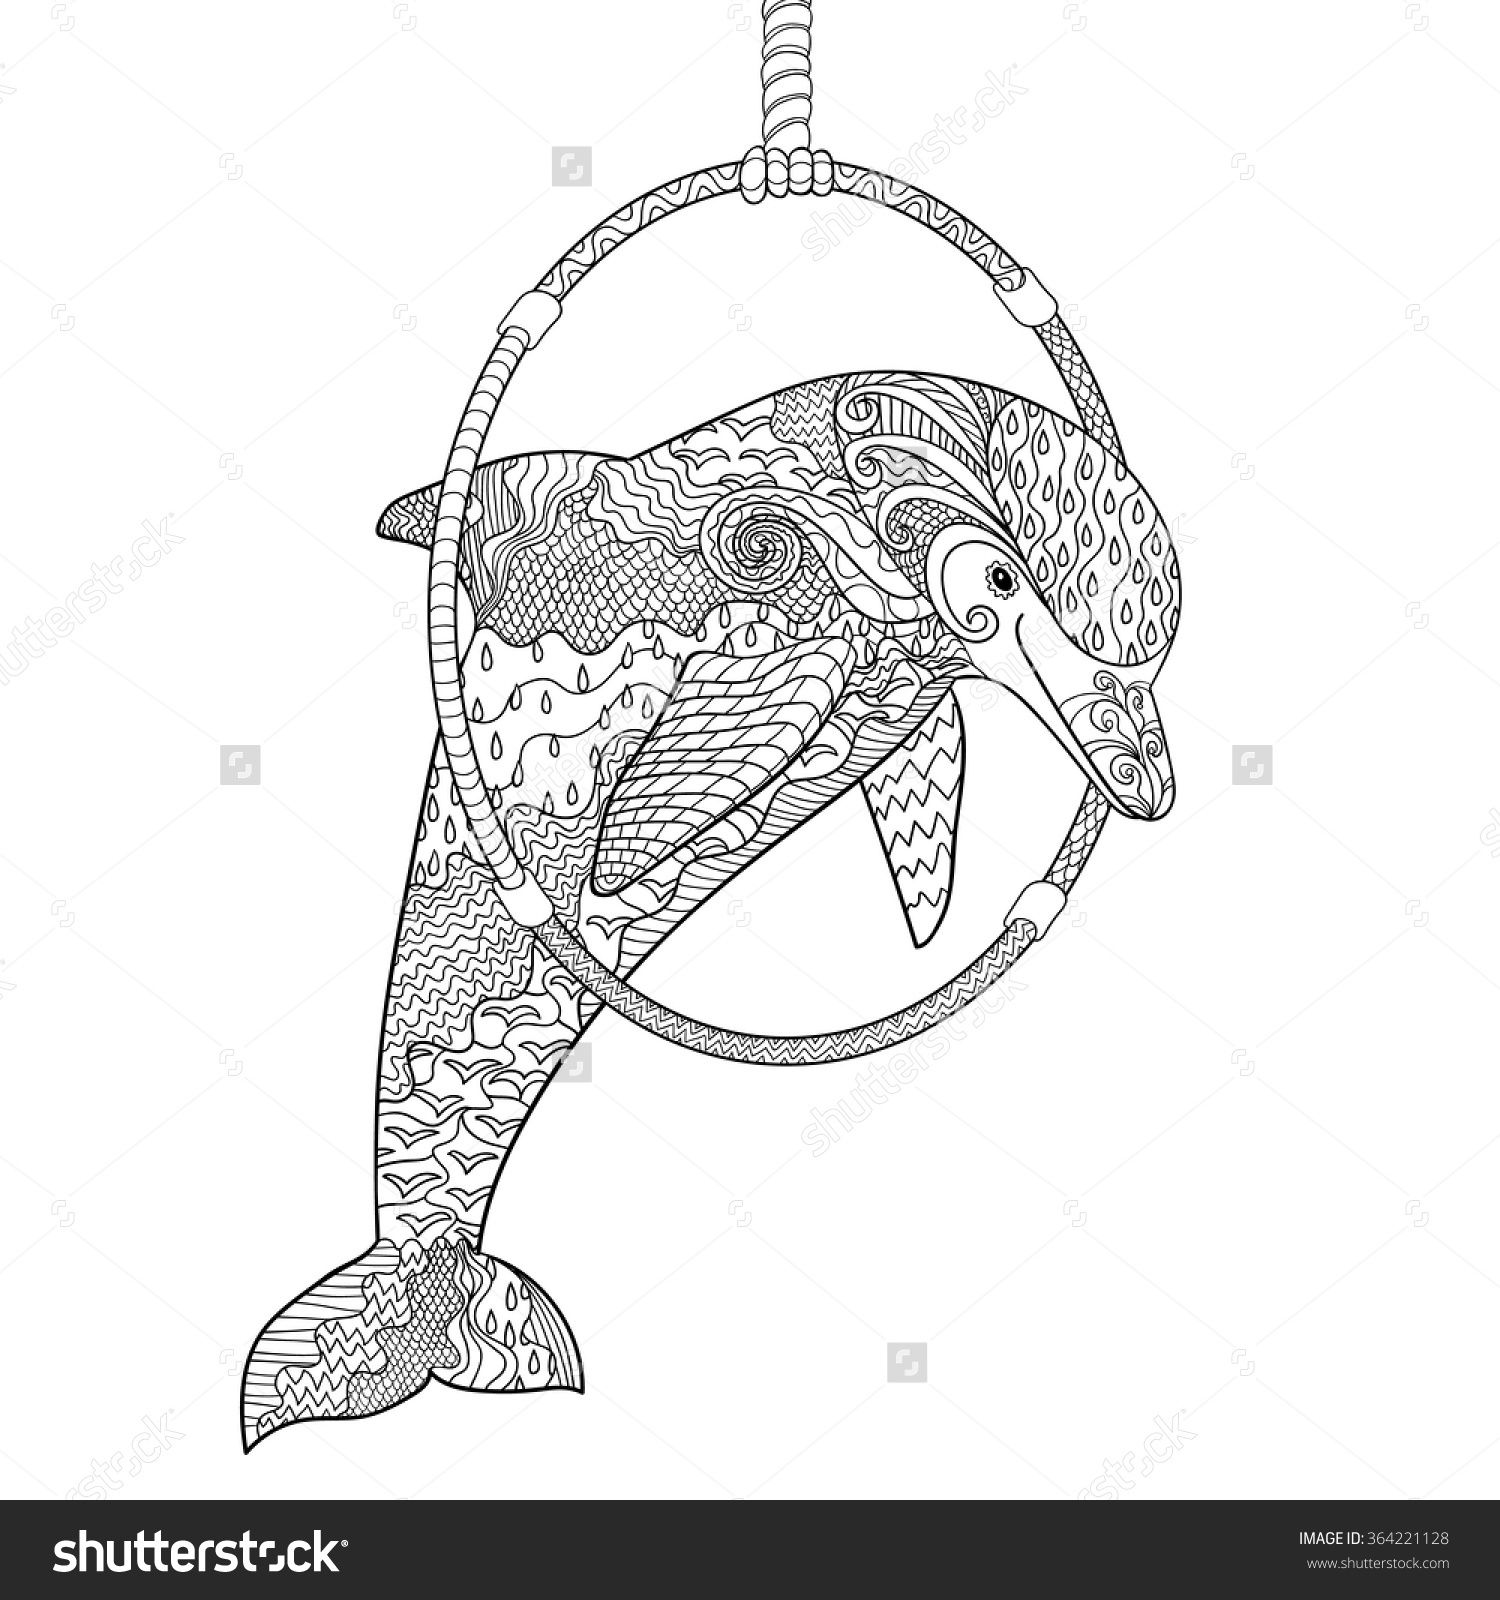 adult colouring pages dolphins - Google Search | Inkleur vir Mammas ...